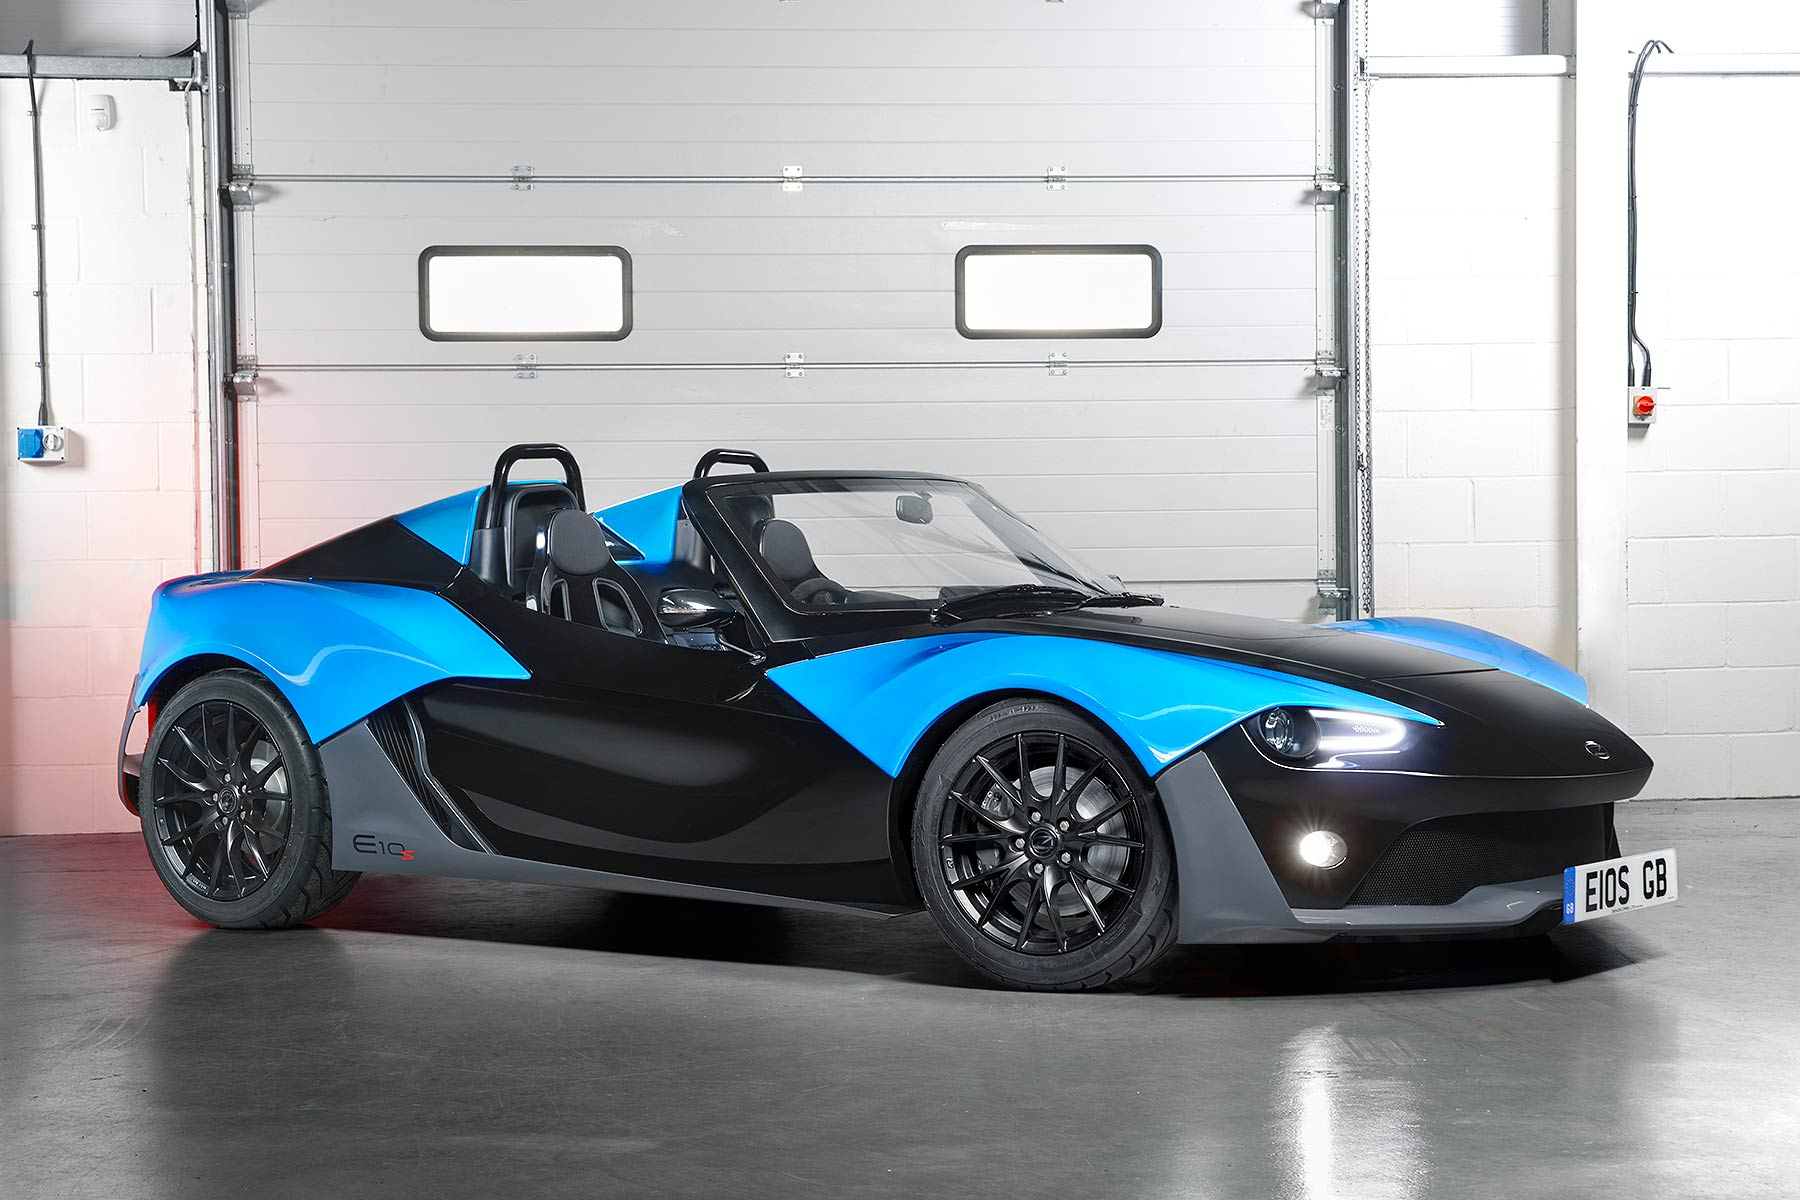 Zenos E10 S Review 2015 First Drive Motoring Research